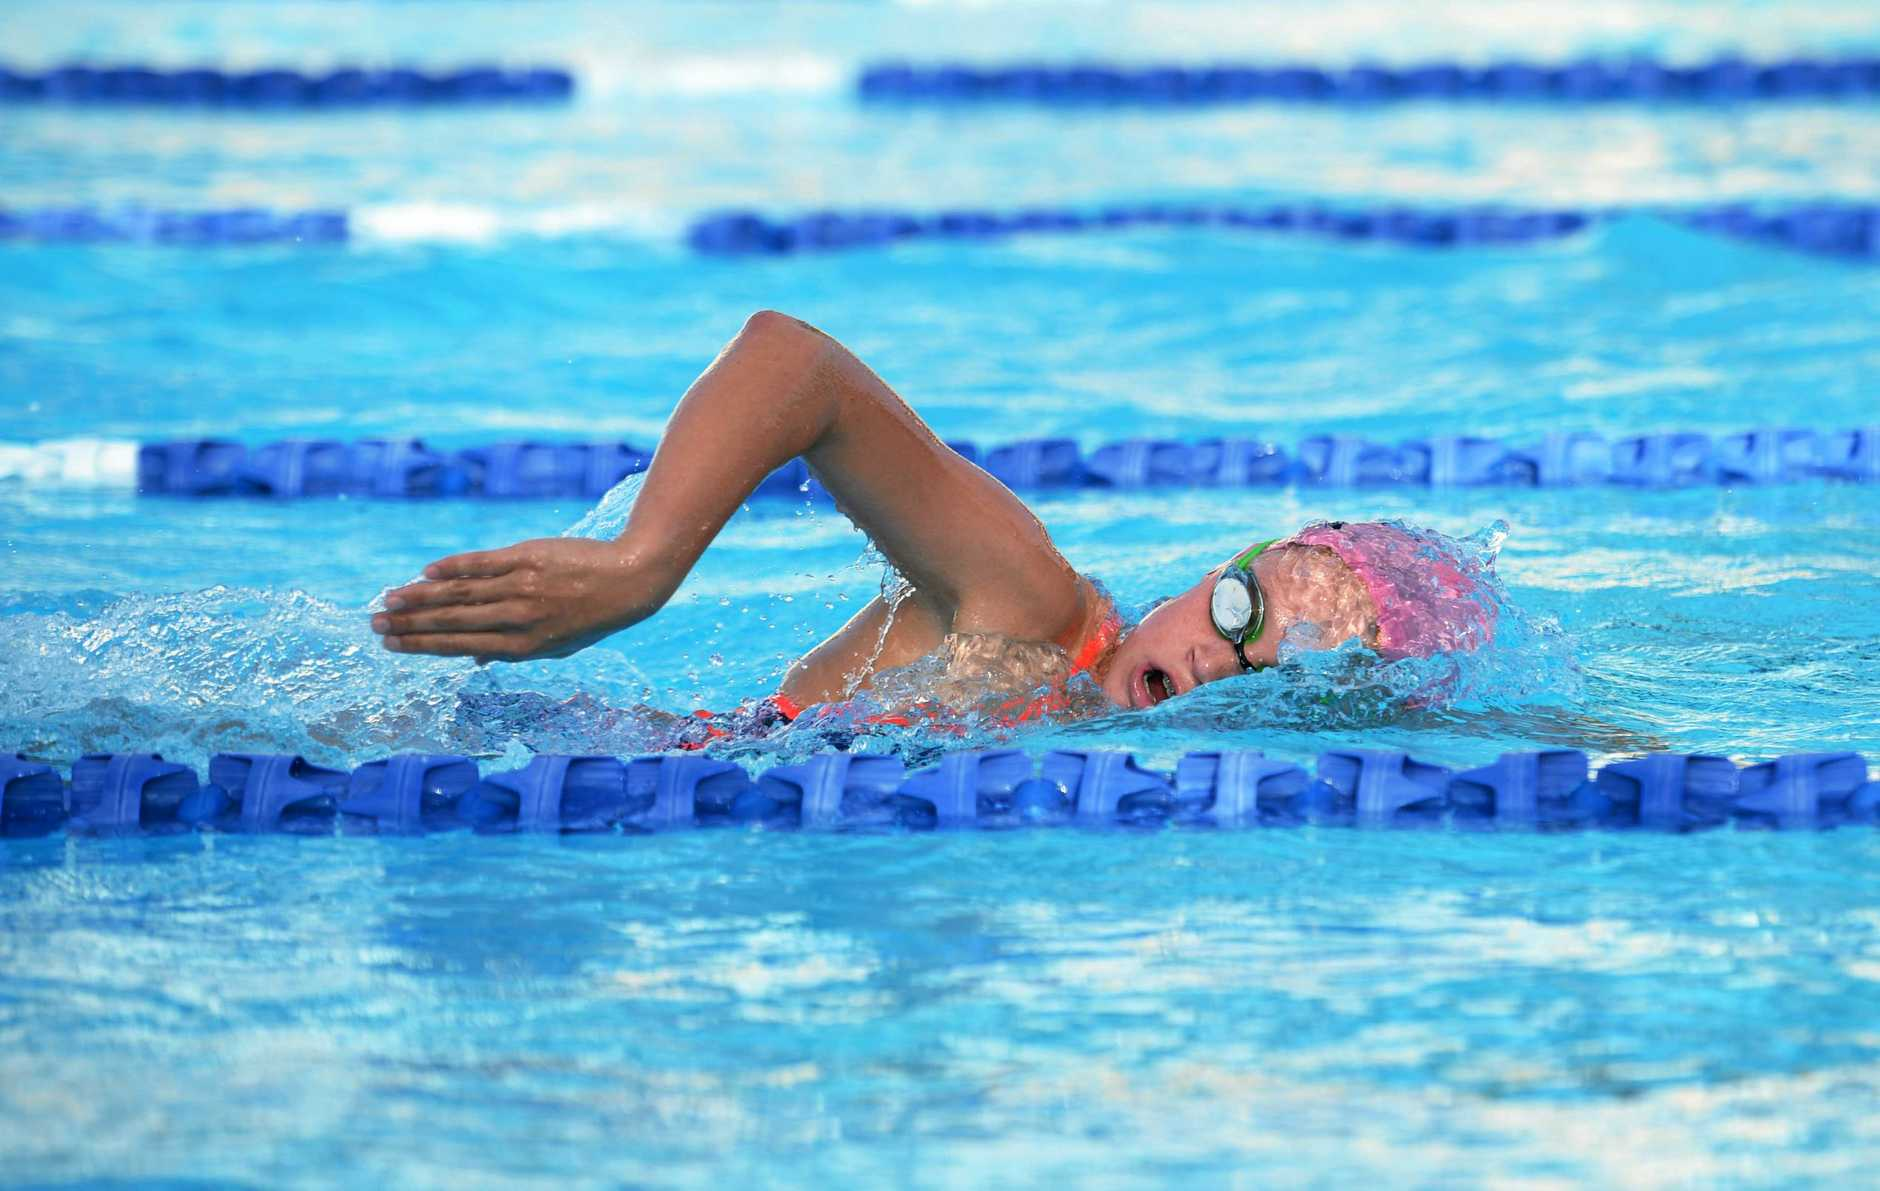 Taryn Roberts, 12, from the Rocky City Swimming Club swam well at the Emu Park Summer Skins Spectacular over the weekend in preparation for her first time swimming at the State Long Course event in Brisbane next week.